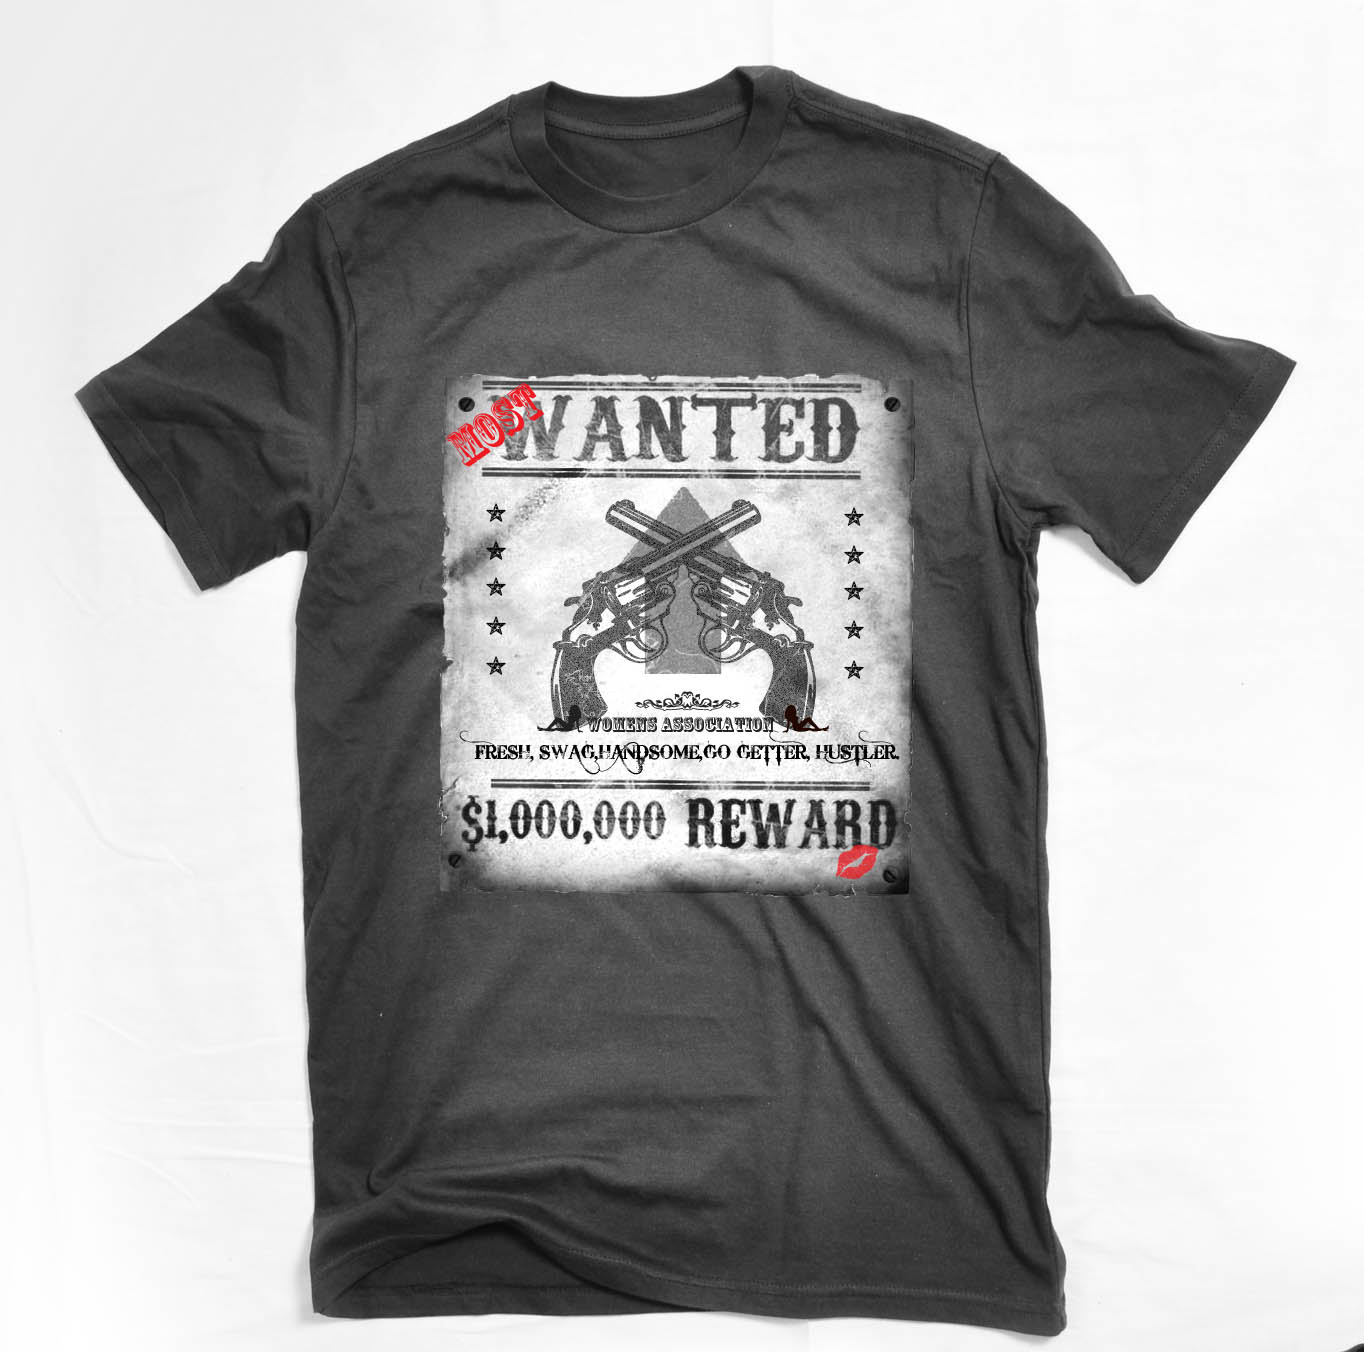 Shirt design of man - Here Is A Design I Did For You Fine Men Out There The Concept Is Old Western Most Wanted Poster You Are The Ladies Man Right Right